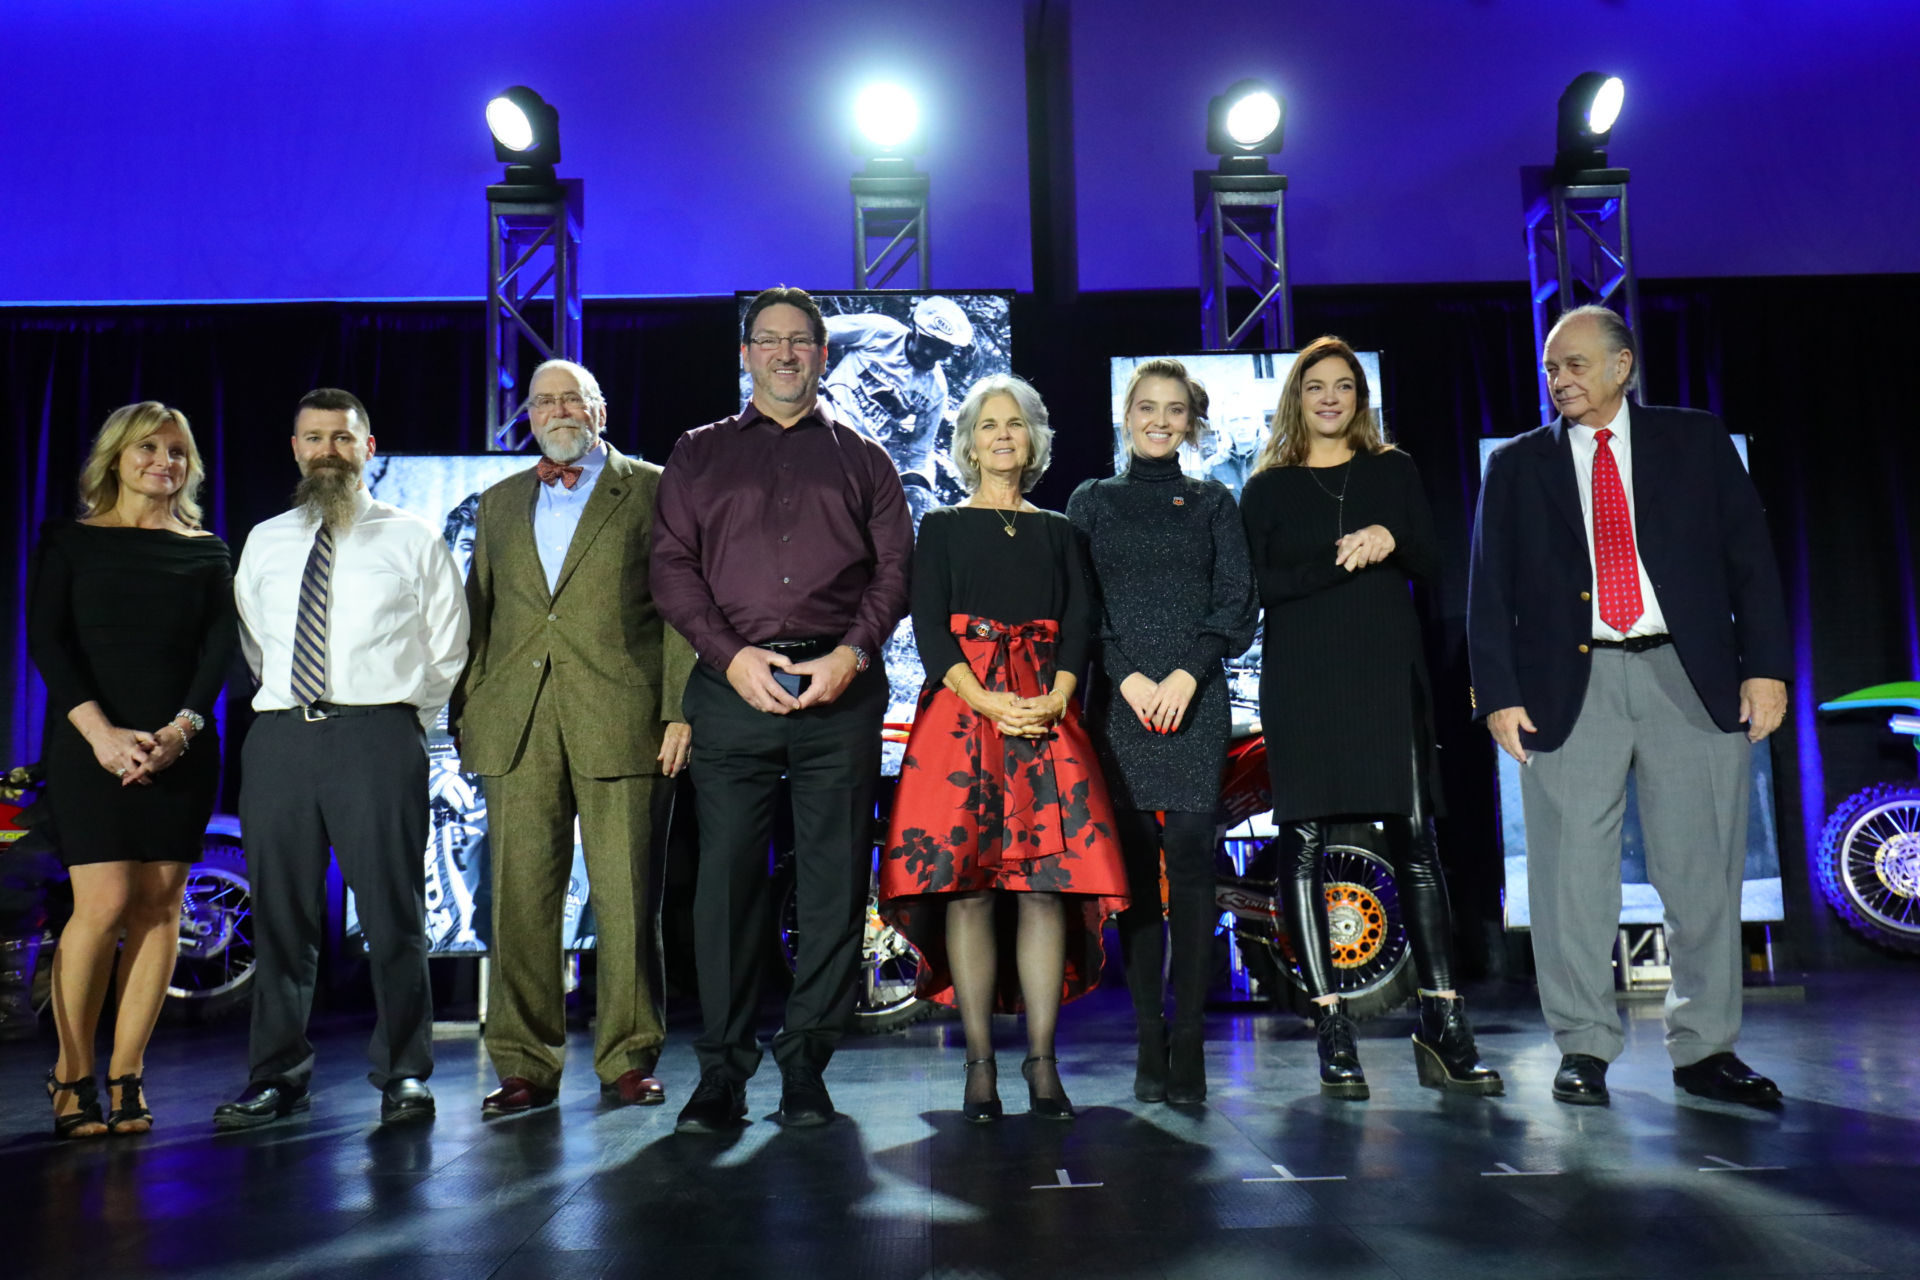 AMA Motorcycle Hall of Fame Class of 2019 (left to right): Trish Walksler and Matt Walksler, who accepted for Dale Walksler; former AMA Board of Directors chair Rick Gray, who accepted for Mark Buckner; Ron Lechien; Nancy Caselli and Sarah White, who accepted for the late Kurt Caselli; and Belen Wagner accompanying her father Wiltz Wagner. Photo by Jeff Kardas, courtesy of AMA.